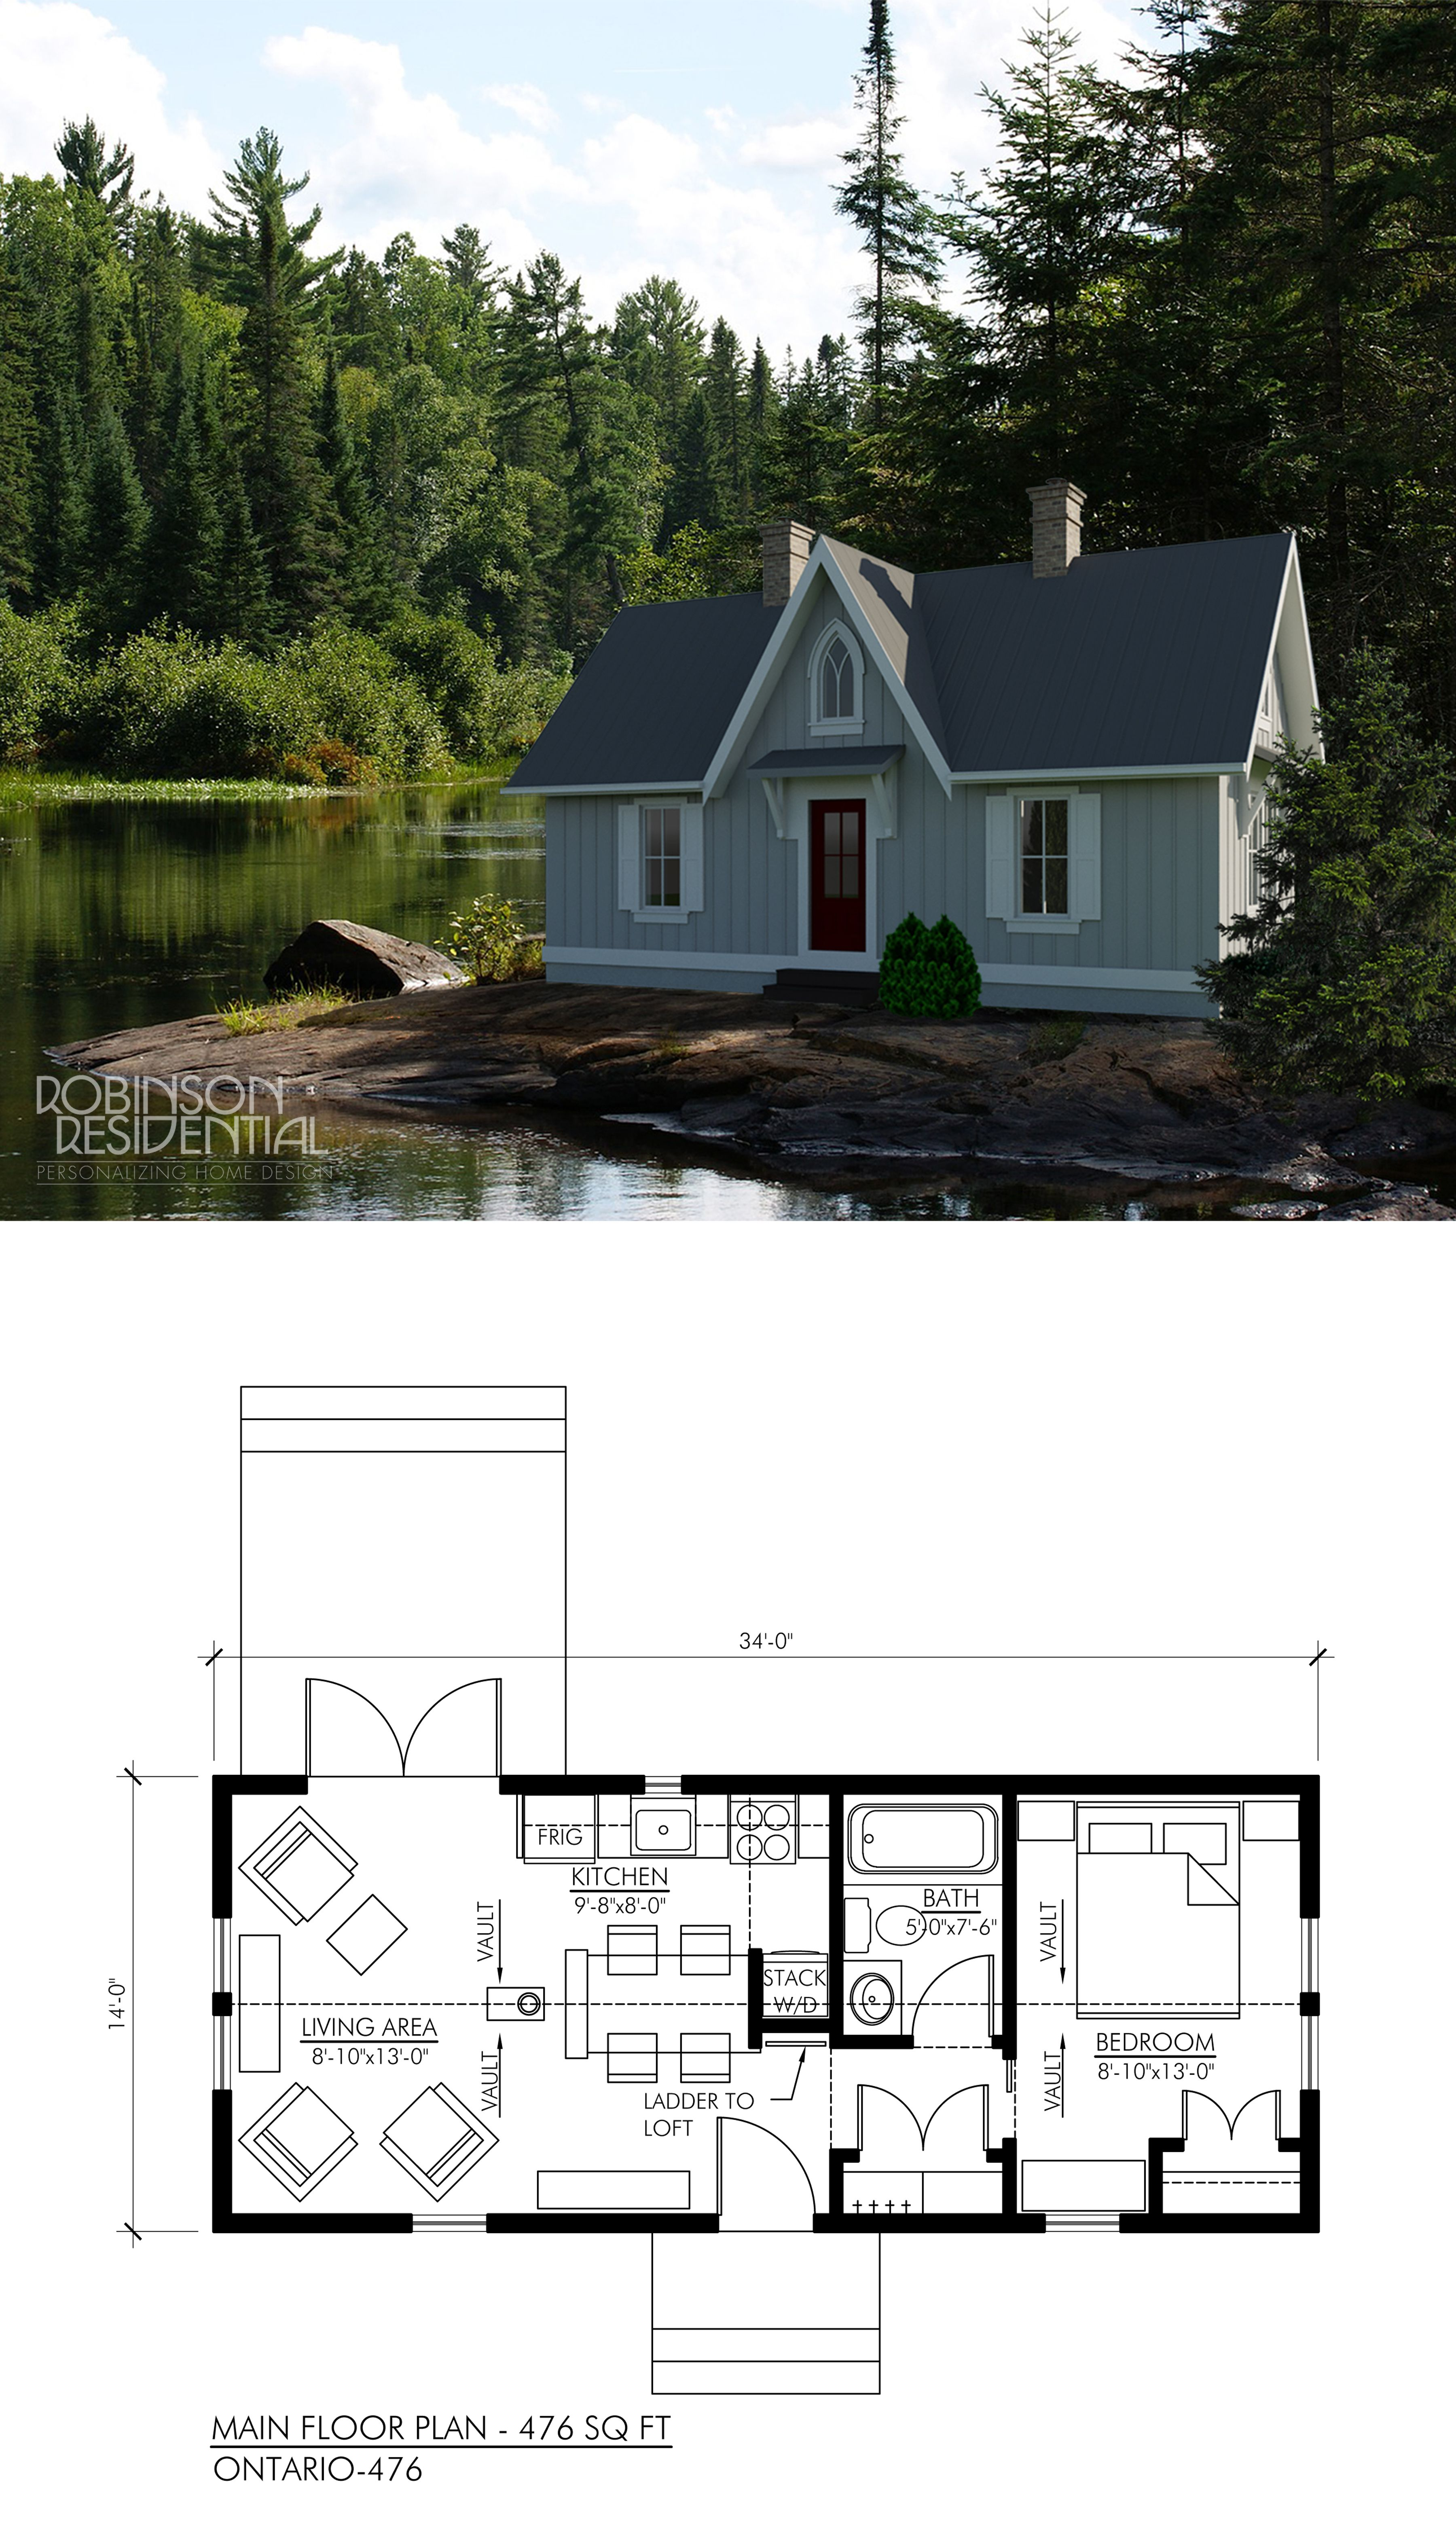 Ontario 504 Tiny House Plans Small House Plans Small